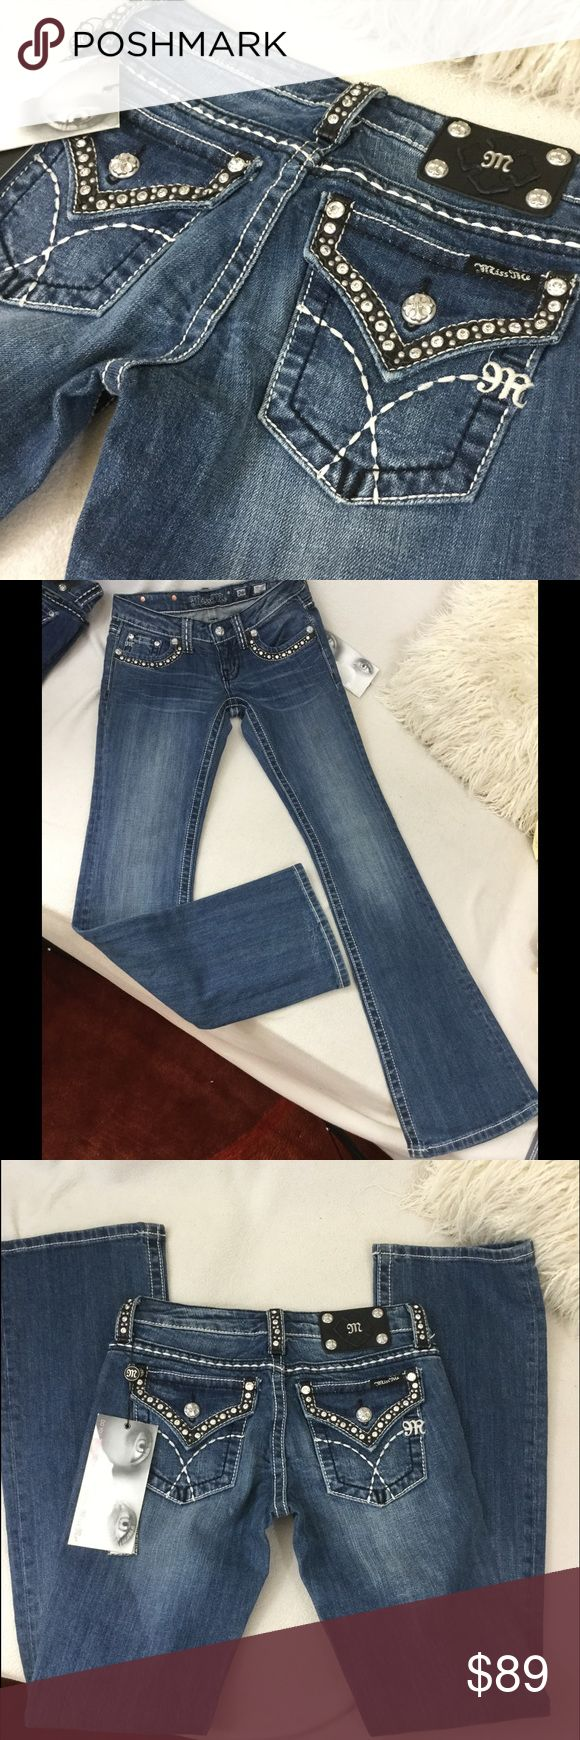 """Miss Me BRAND NEW Leather/Rhinestone  jeans Miss Me BRAND NEW boot cut jeans. Edgy black leather detail with rhinestones on pockets and belt loops. Excellent condition never worn. Inseam measures 33.5"""" long 14"""" across waist and a 7.5"""" front rise Miss Me Jeans Boot Cut"""